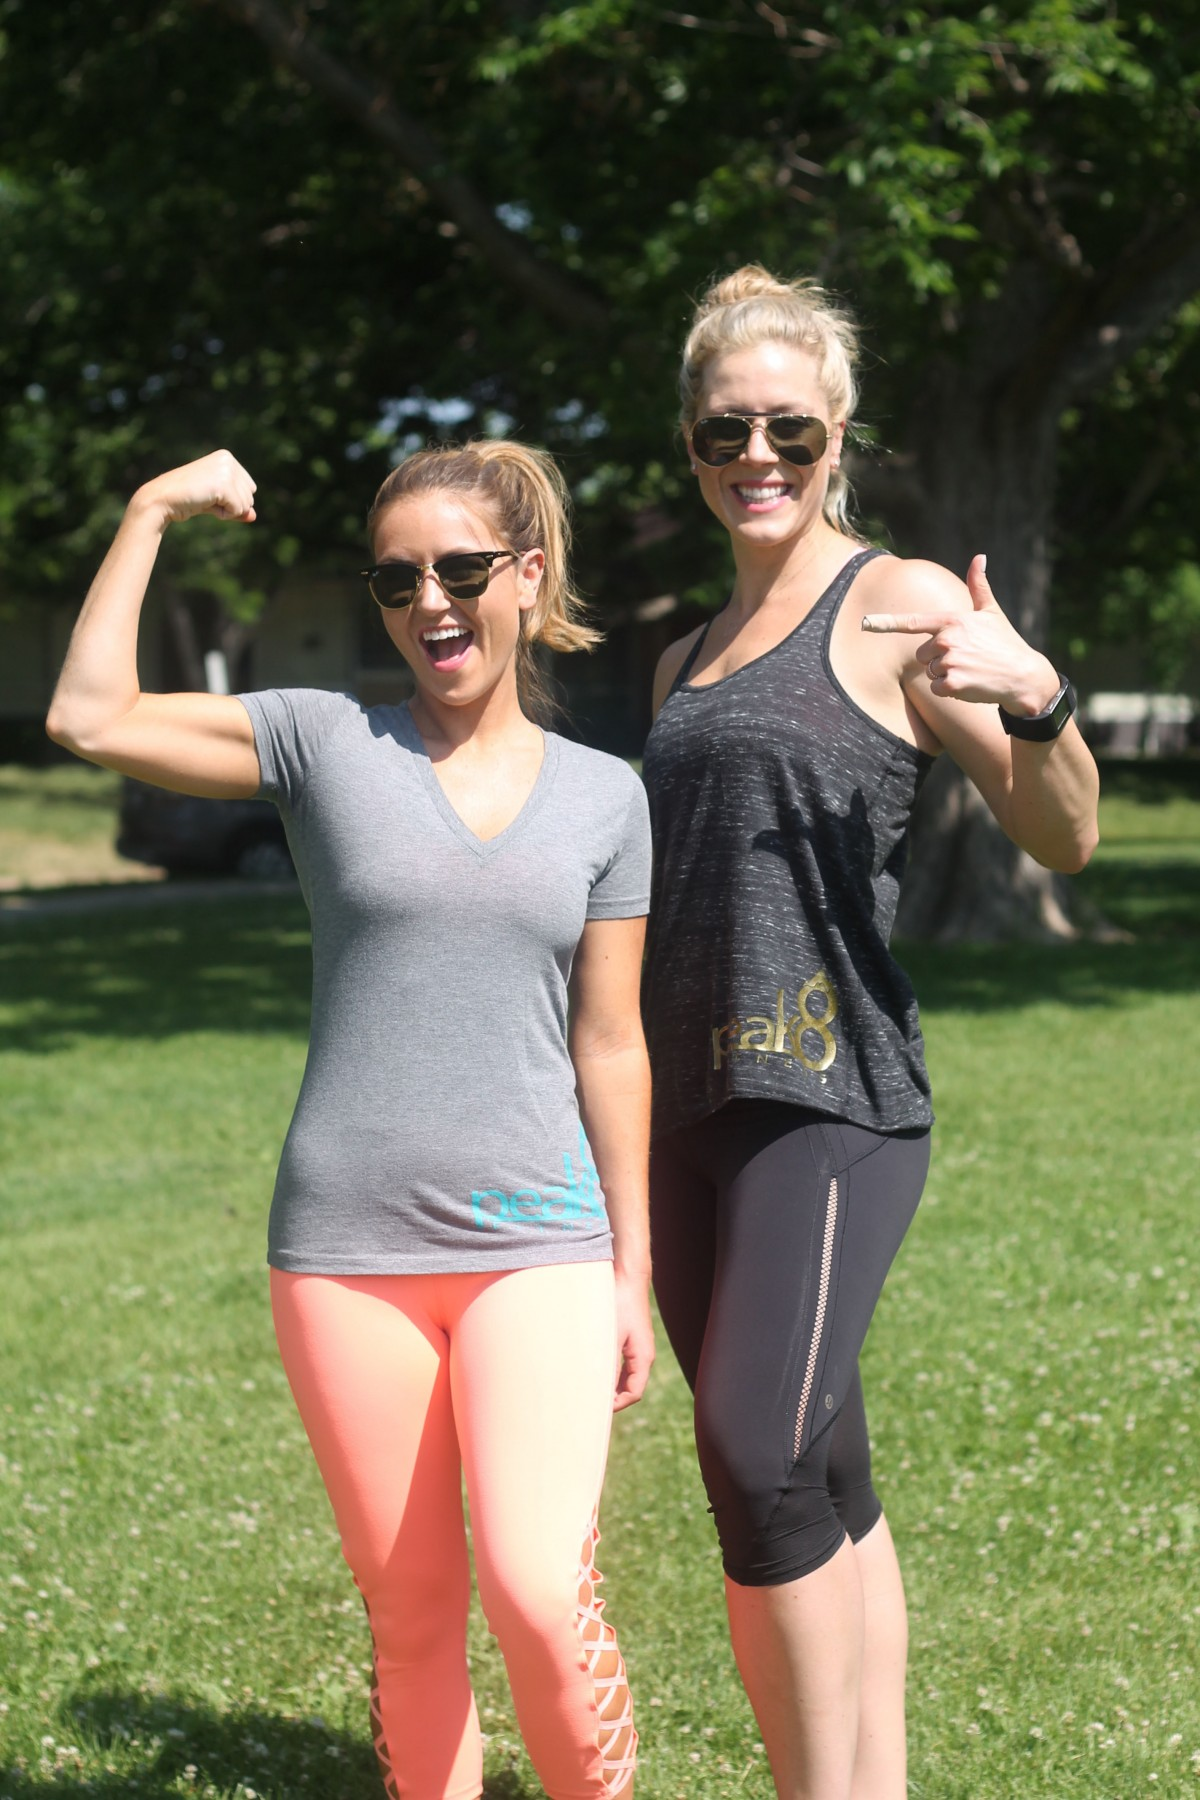 Amber from Every Once In a style and Niccole from peak 8 fitness showing off ambers fitness progress